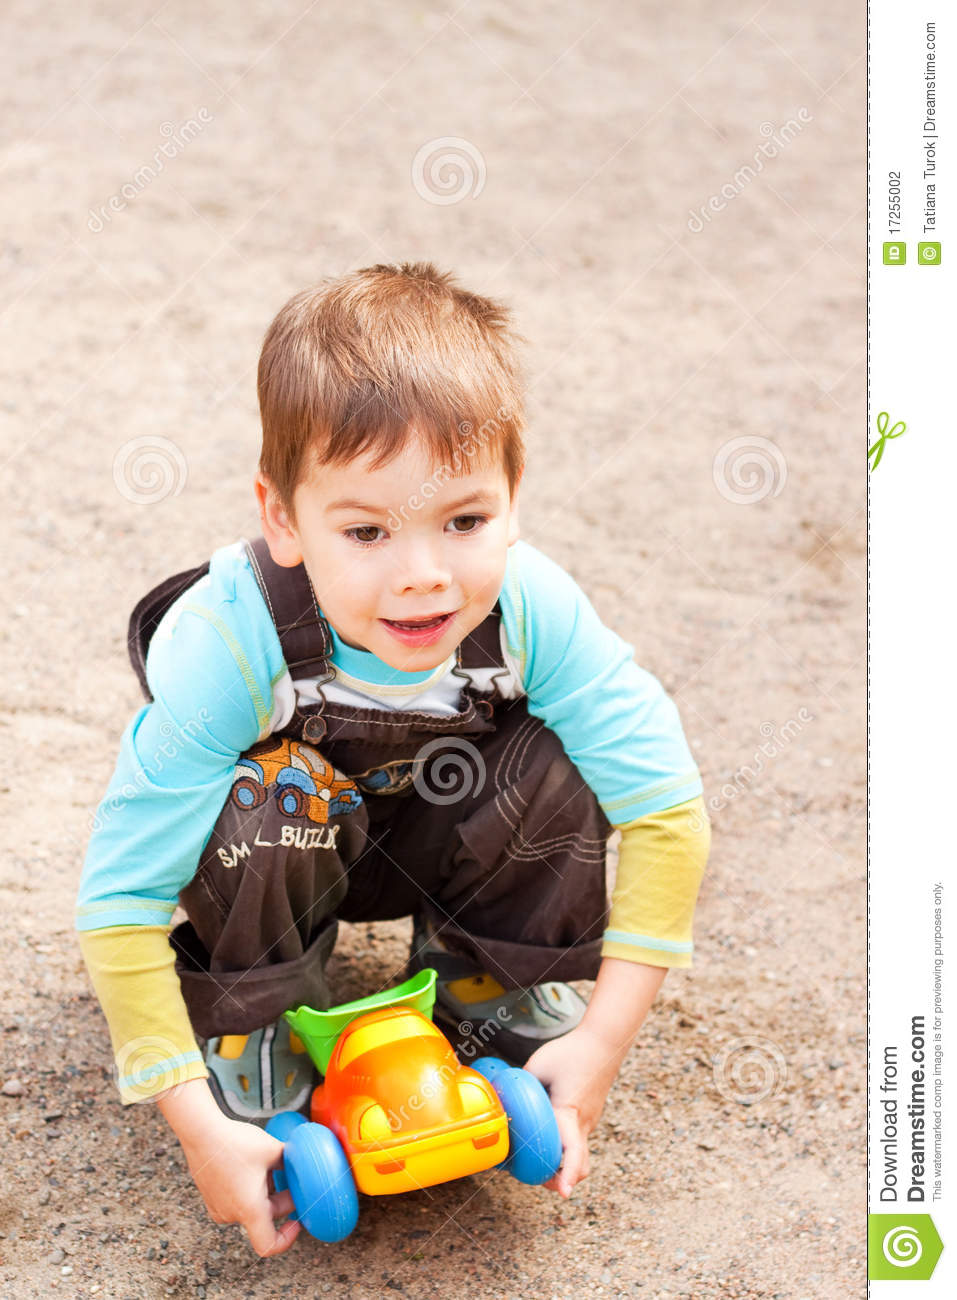 Little Boy With Toy Car : Little boy playing with a toy car stock image